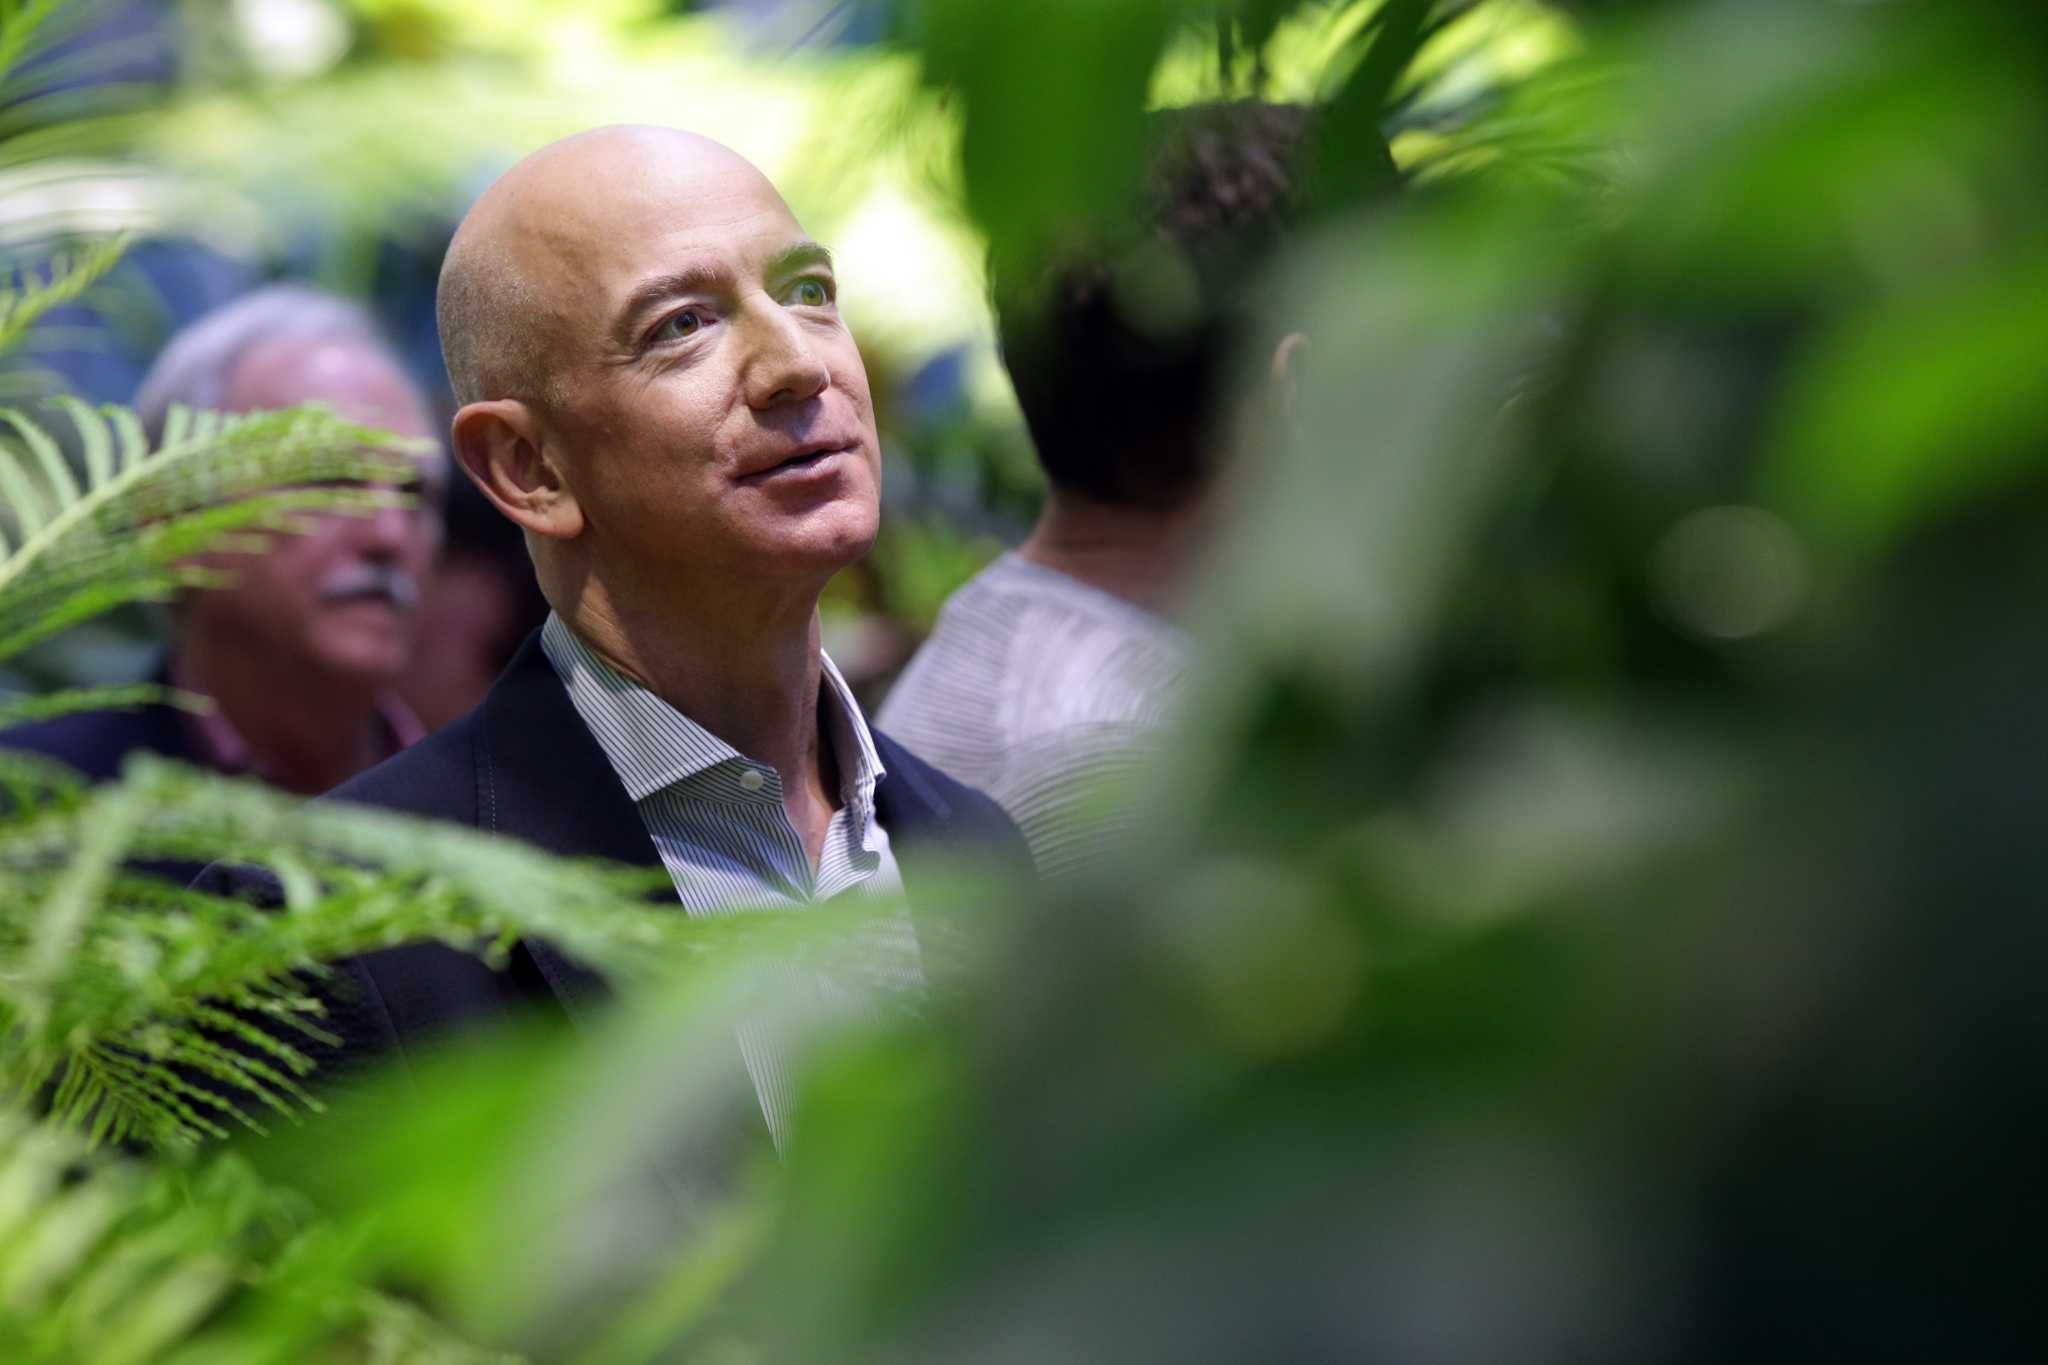 Amazon pours $1 million in bid to 'flip' Seattle City Council